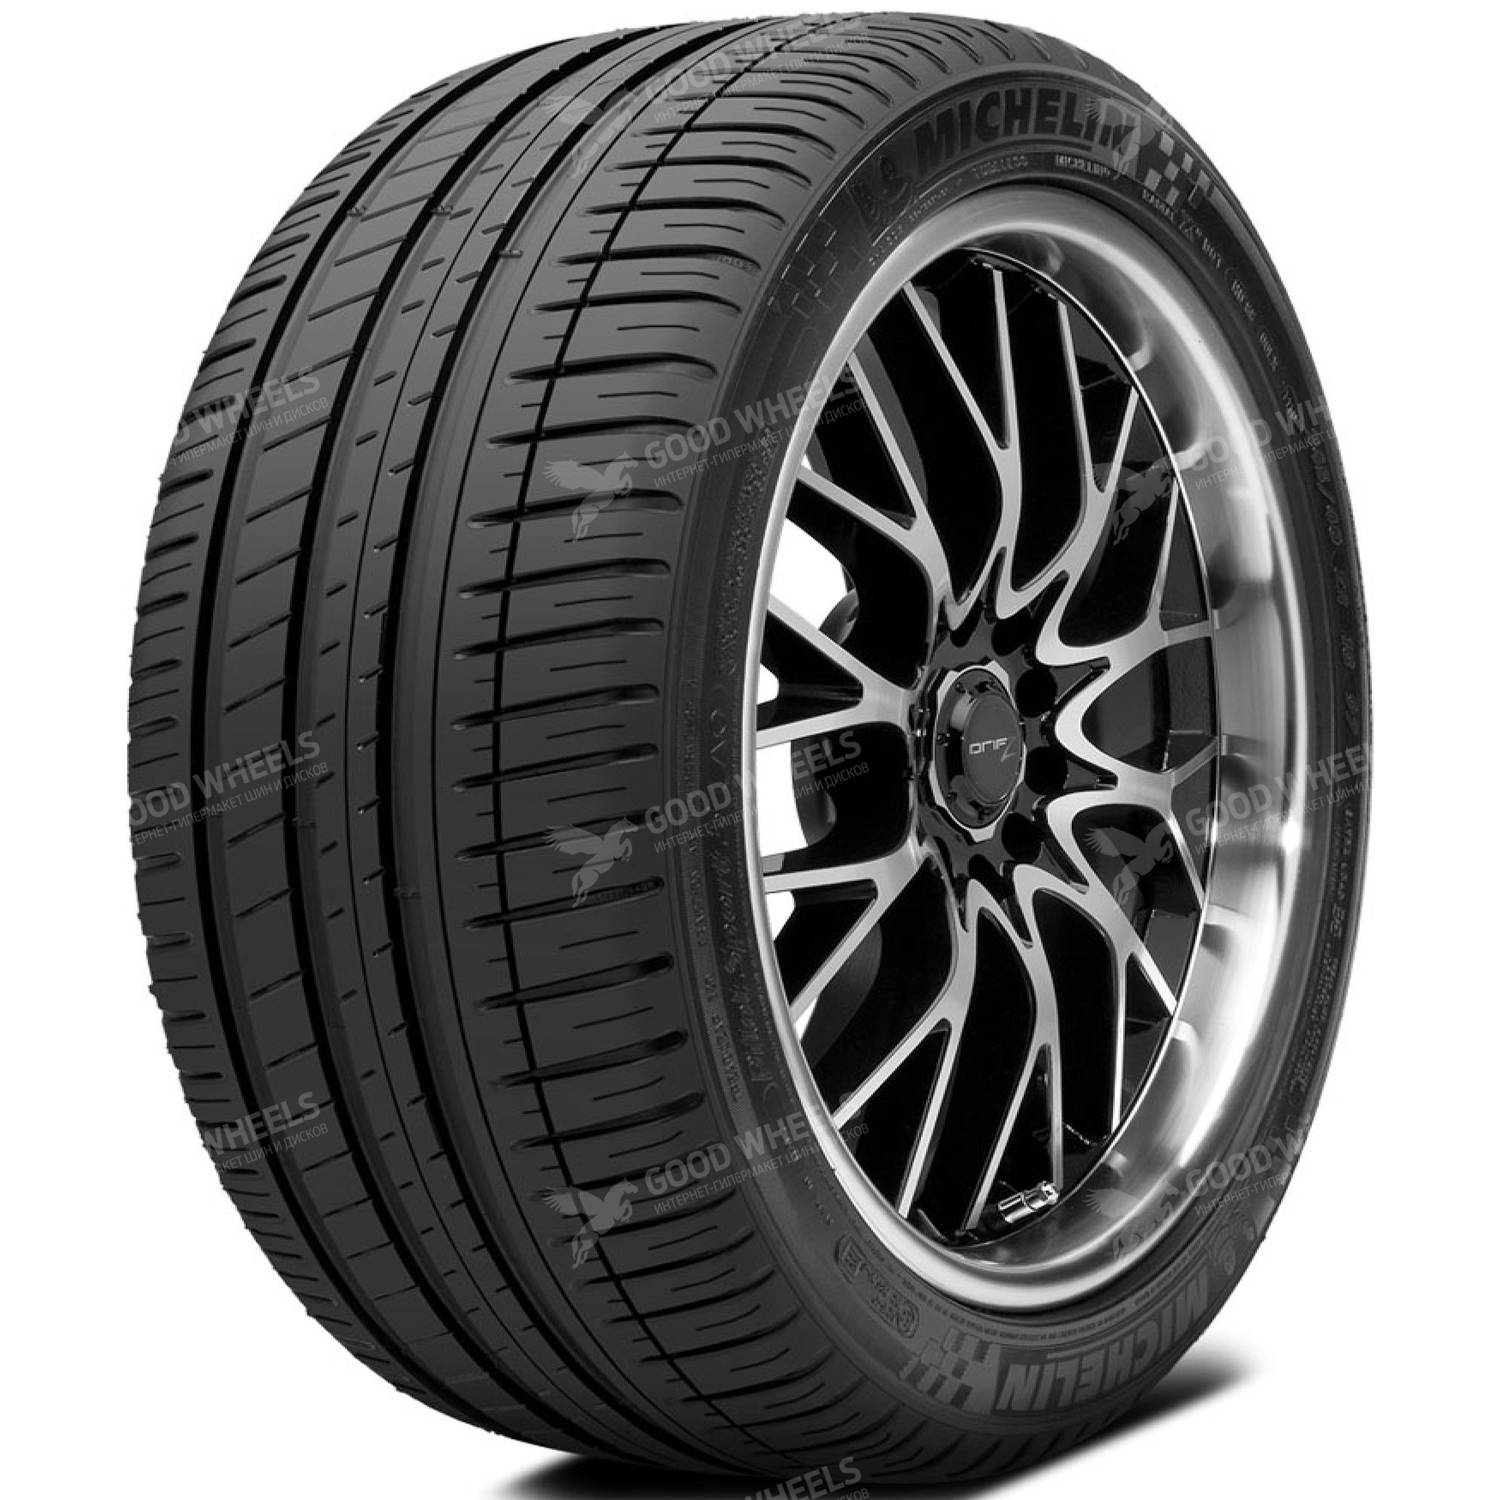 Michelin Pilot Sport 3 (PS3) 235/45 R18 98Y